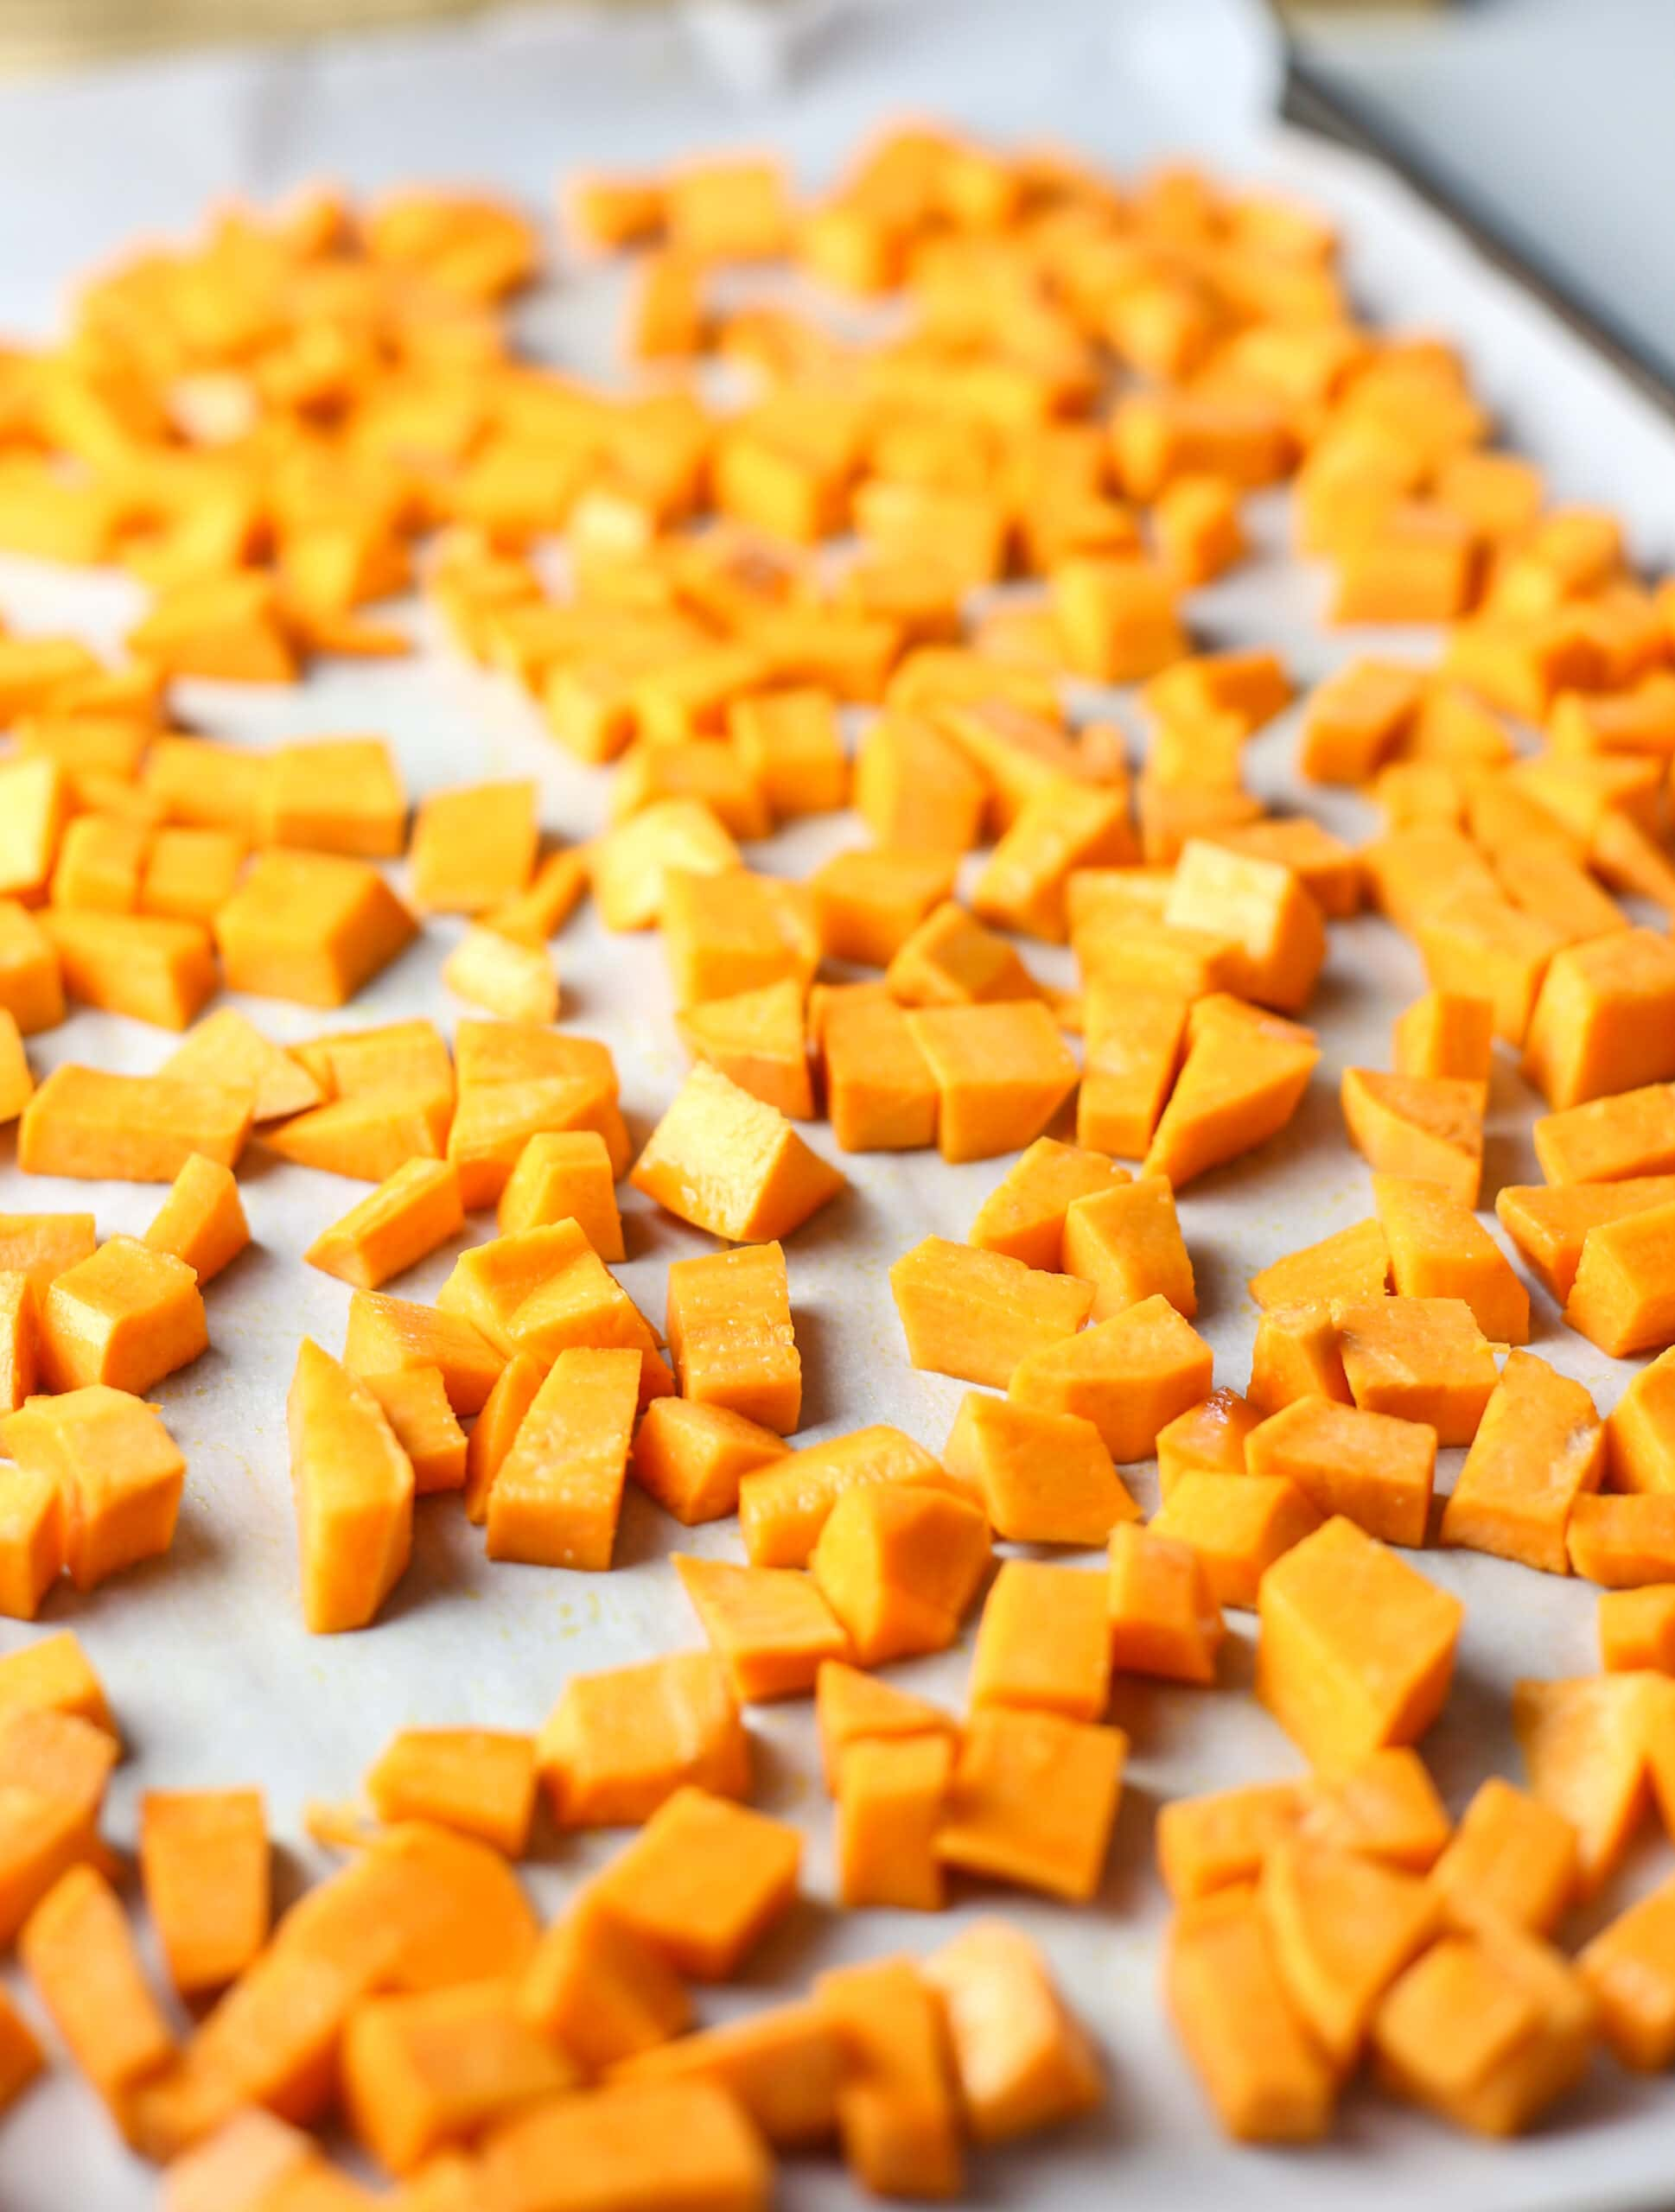 Chopped raw butternut squash on a parchment paper lined baking sheet.